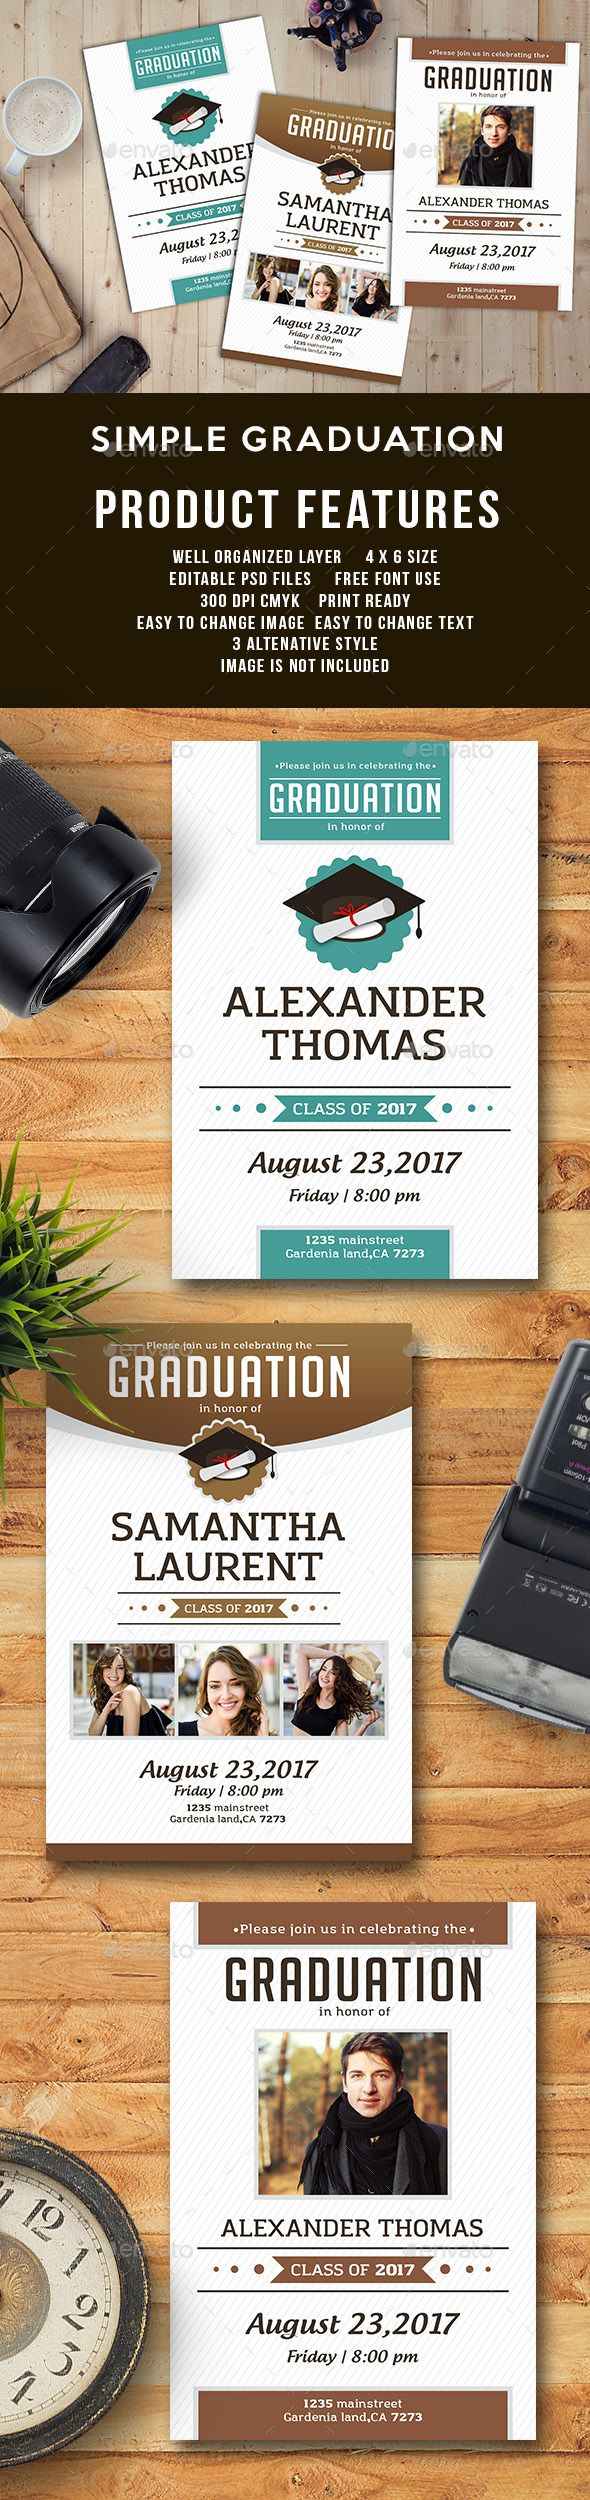 Simple Graduation Template — Photoshop PSD #tan #invite • Available here → https://graphicriver.net/item/simple-graduation-template/19208647?ref=pxcr